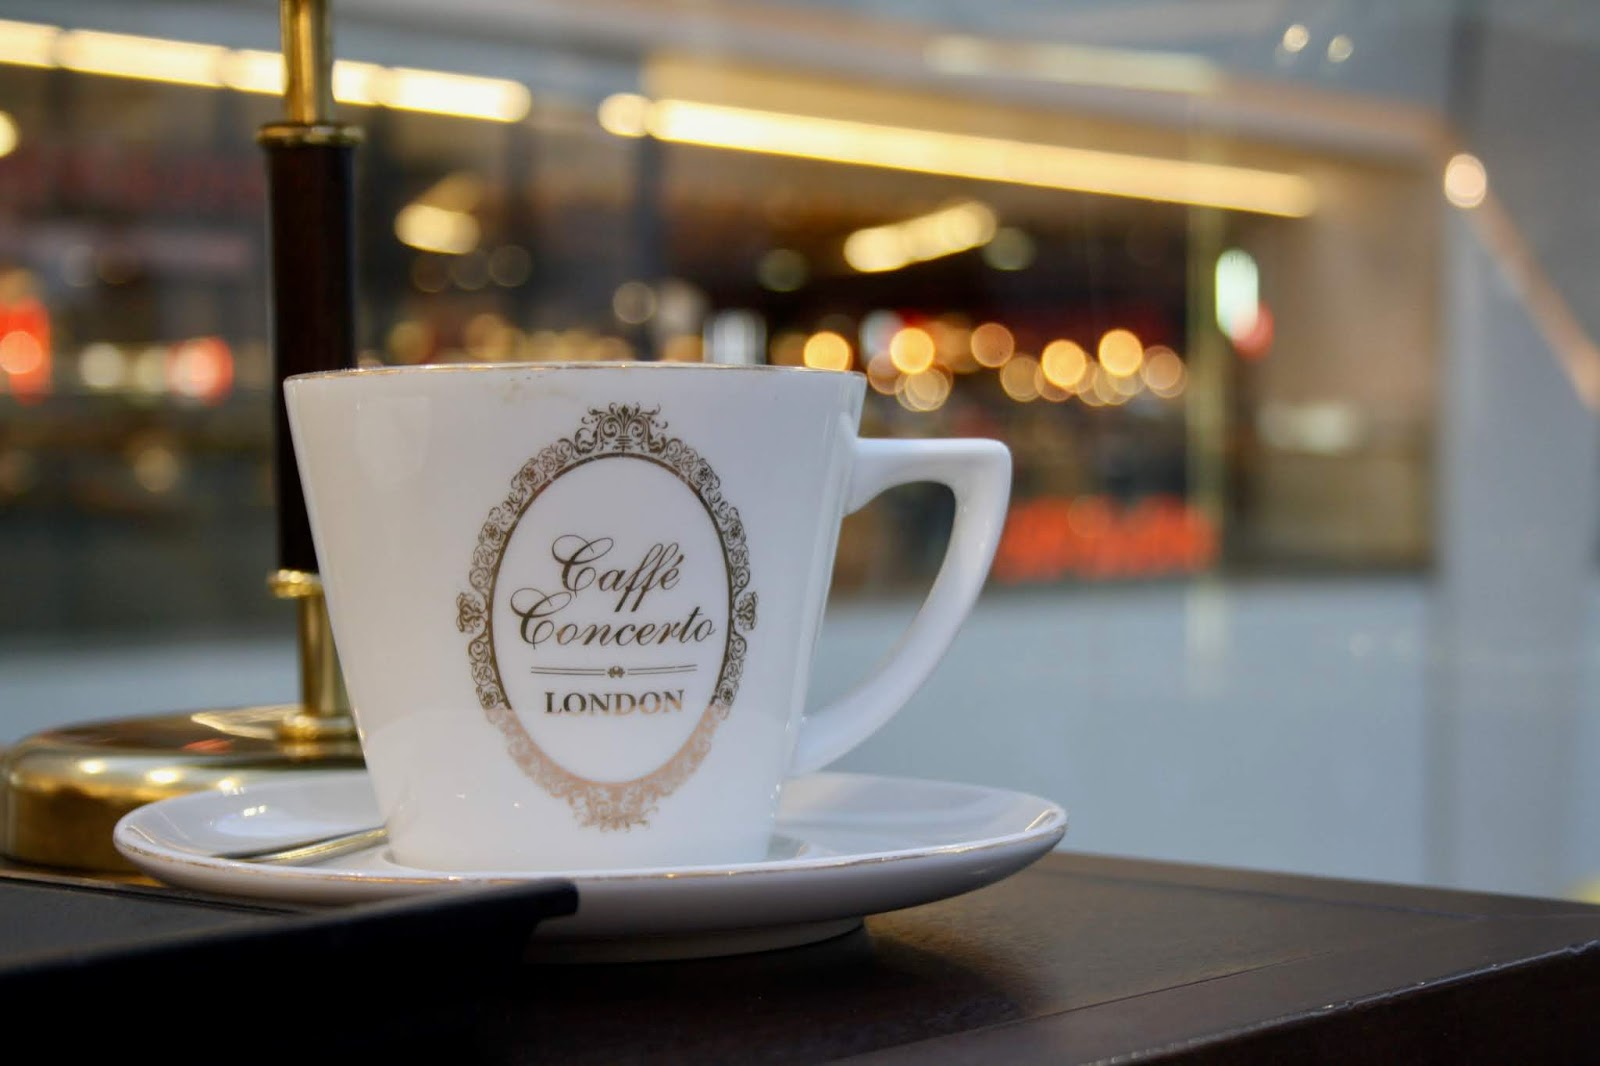 close up of a coffee cup at Caffe Concerto, Grand Central Station, Birmingham